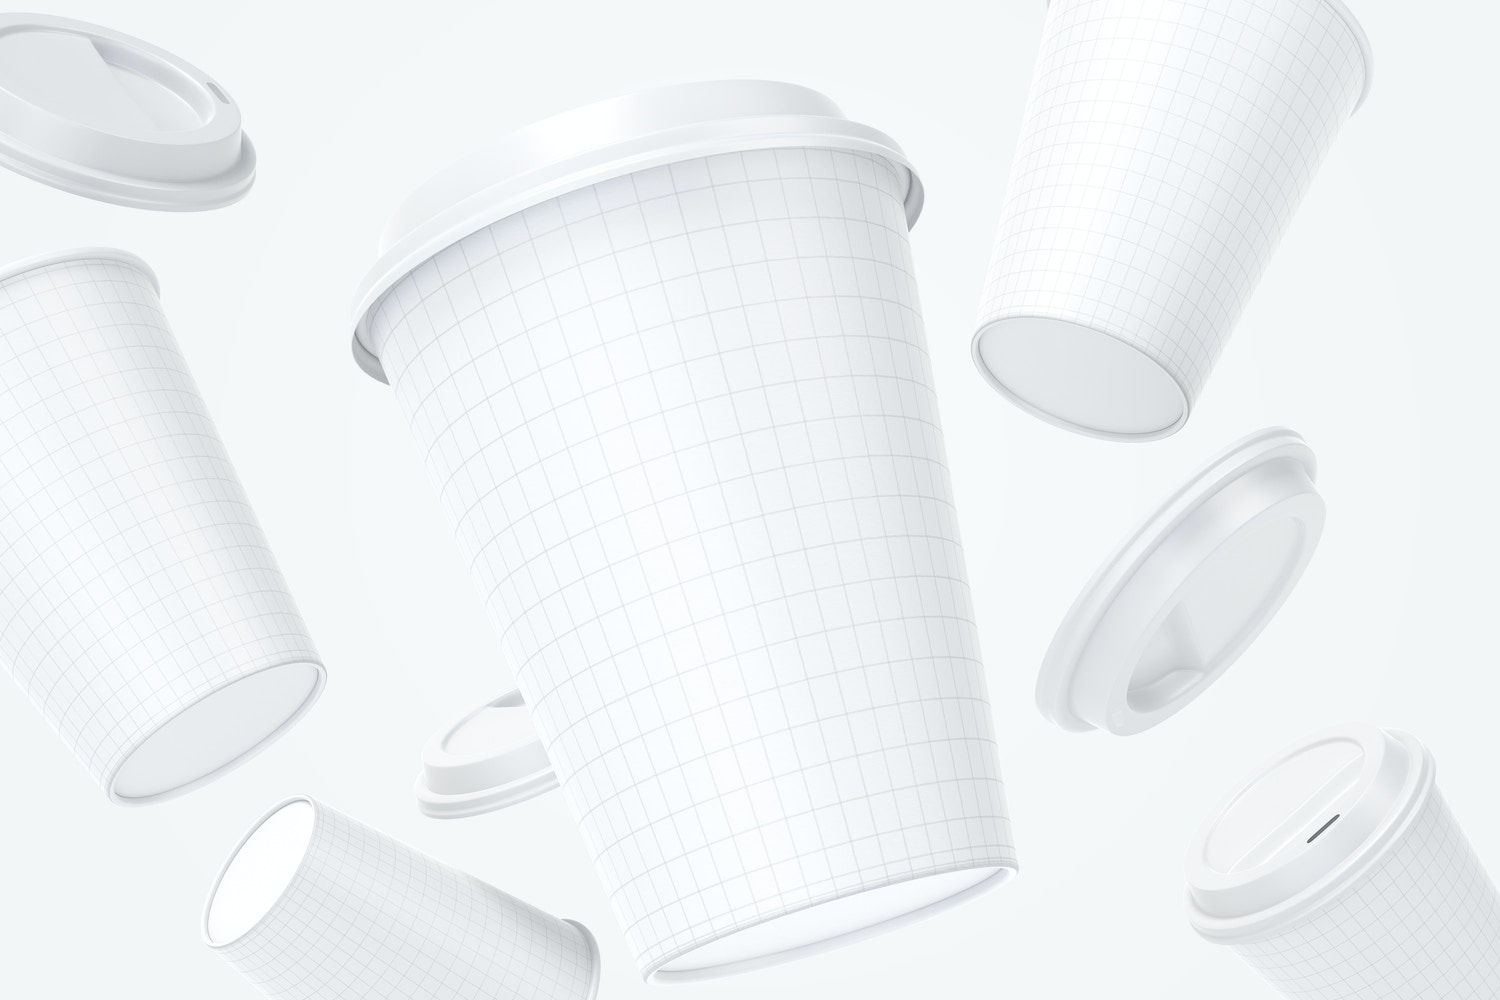 12oz Paper Coffee Cups with Caps Mockup, Falling